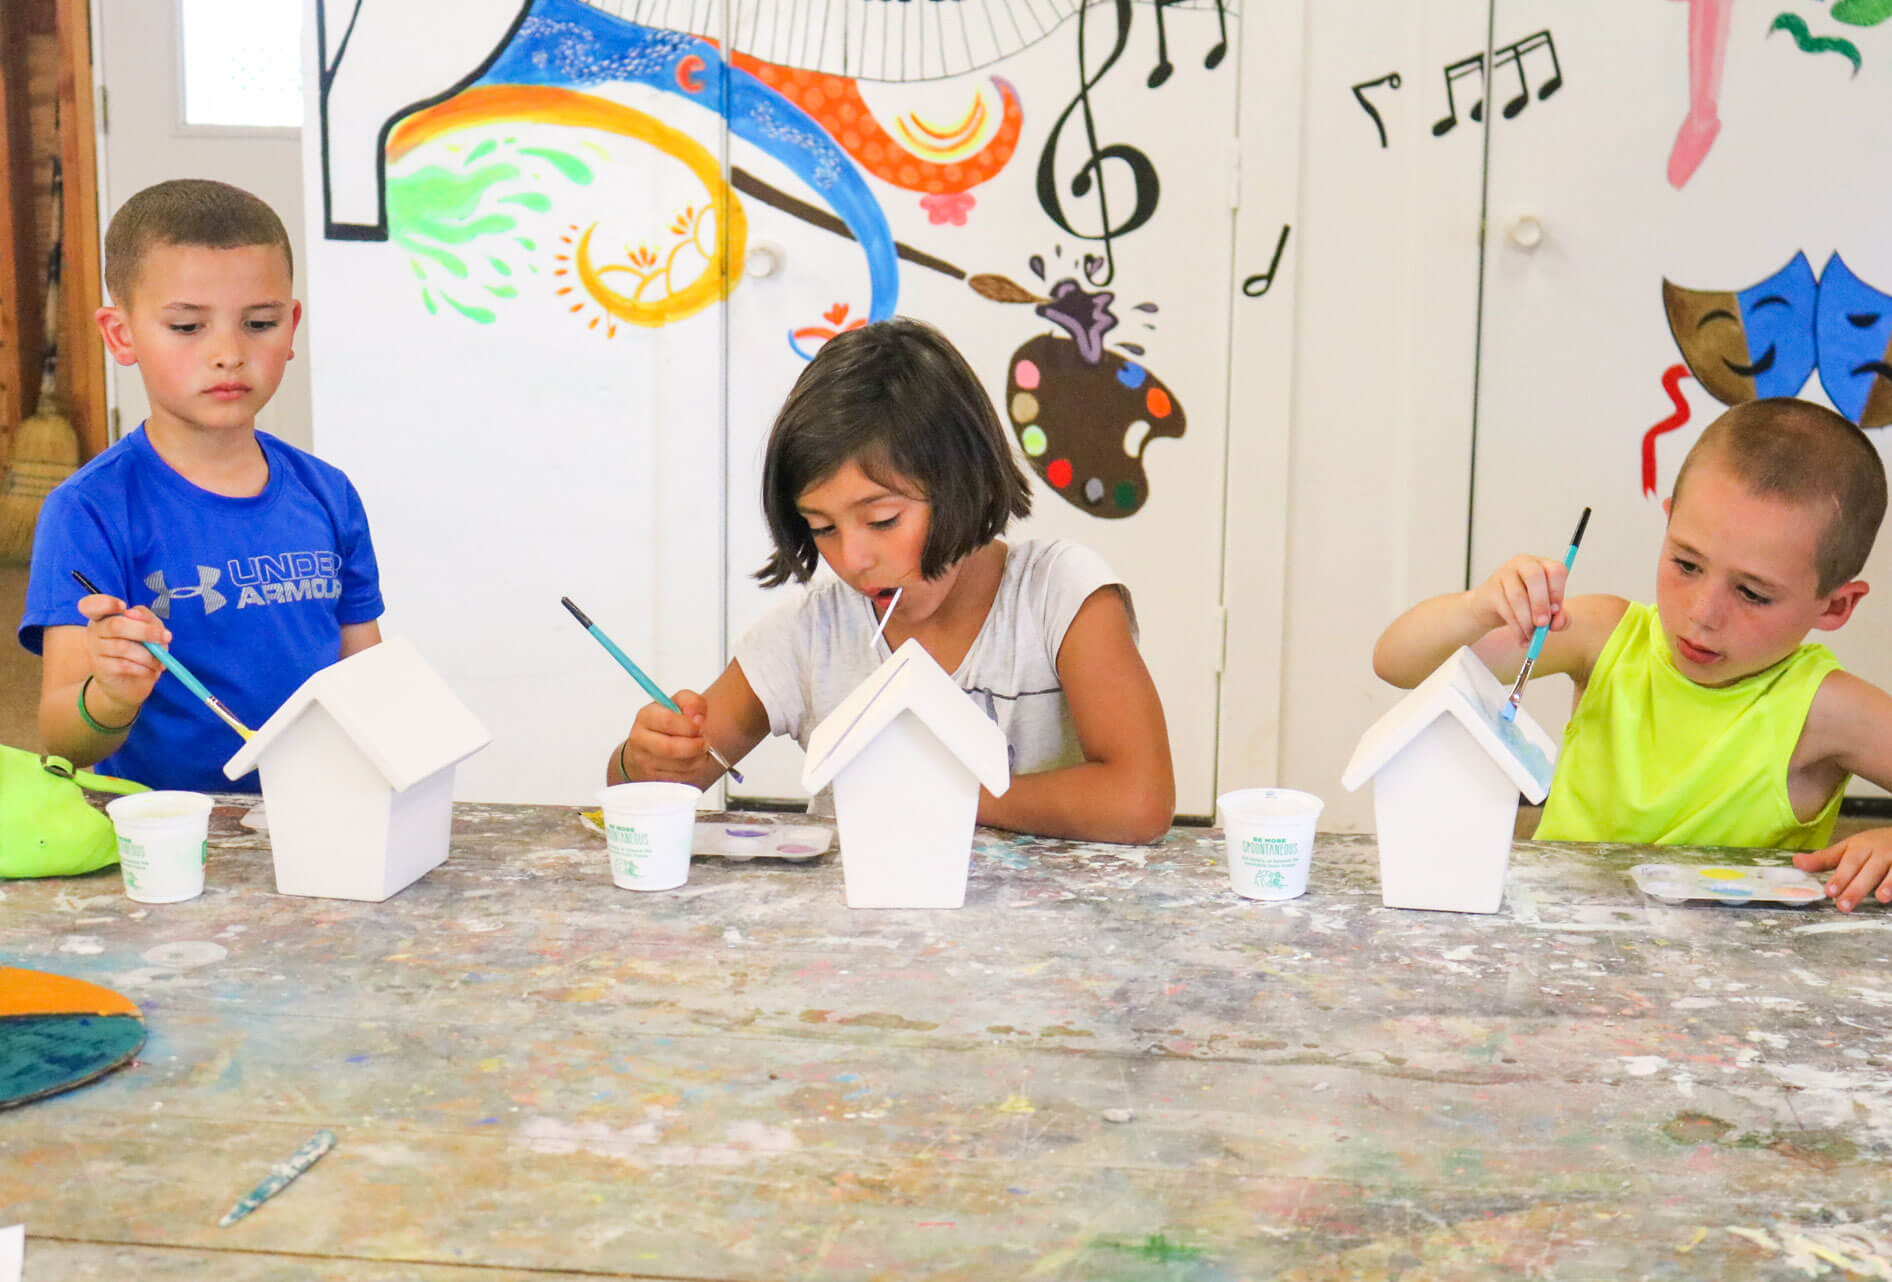 Young campers doing arts and crafts